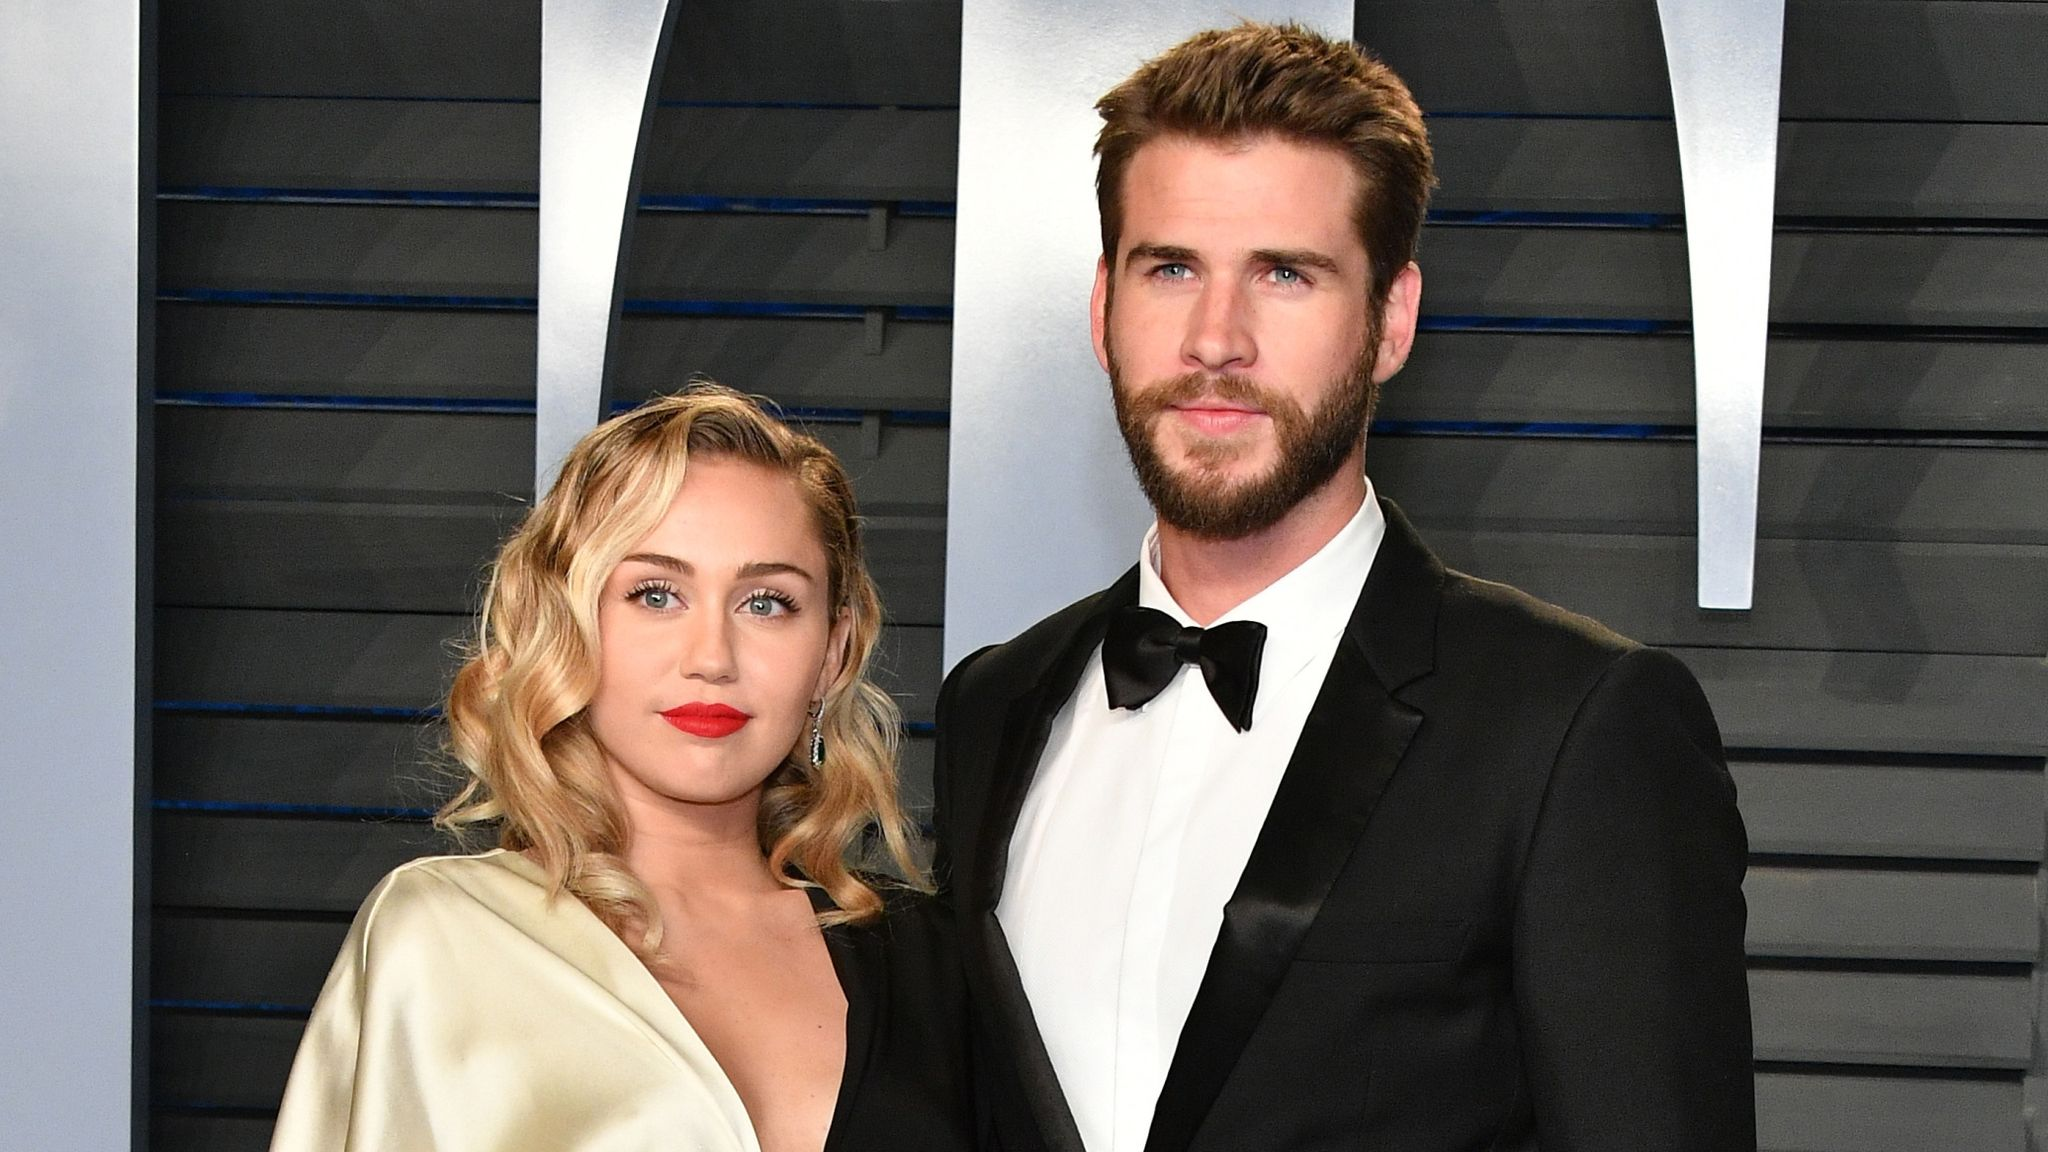 Miley Cyrus And Liam Hemsworth Share Photo Of Home Destroyed By California Wildfires Ents Arts News Sky News